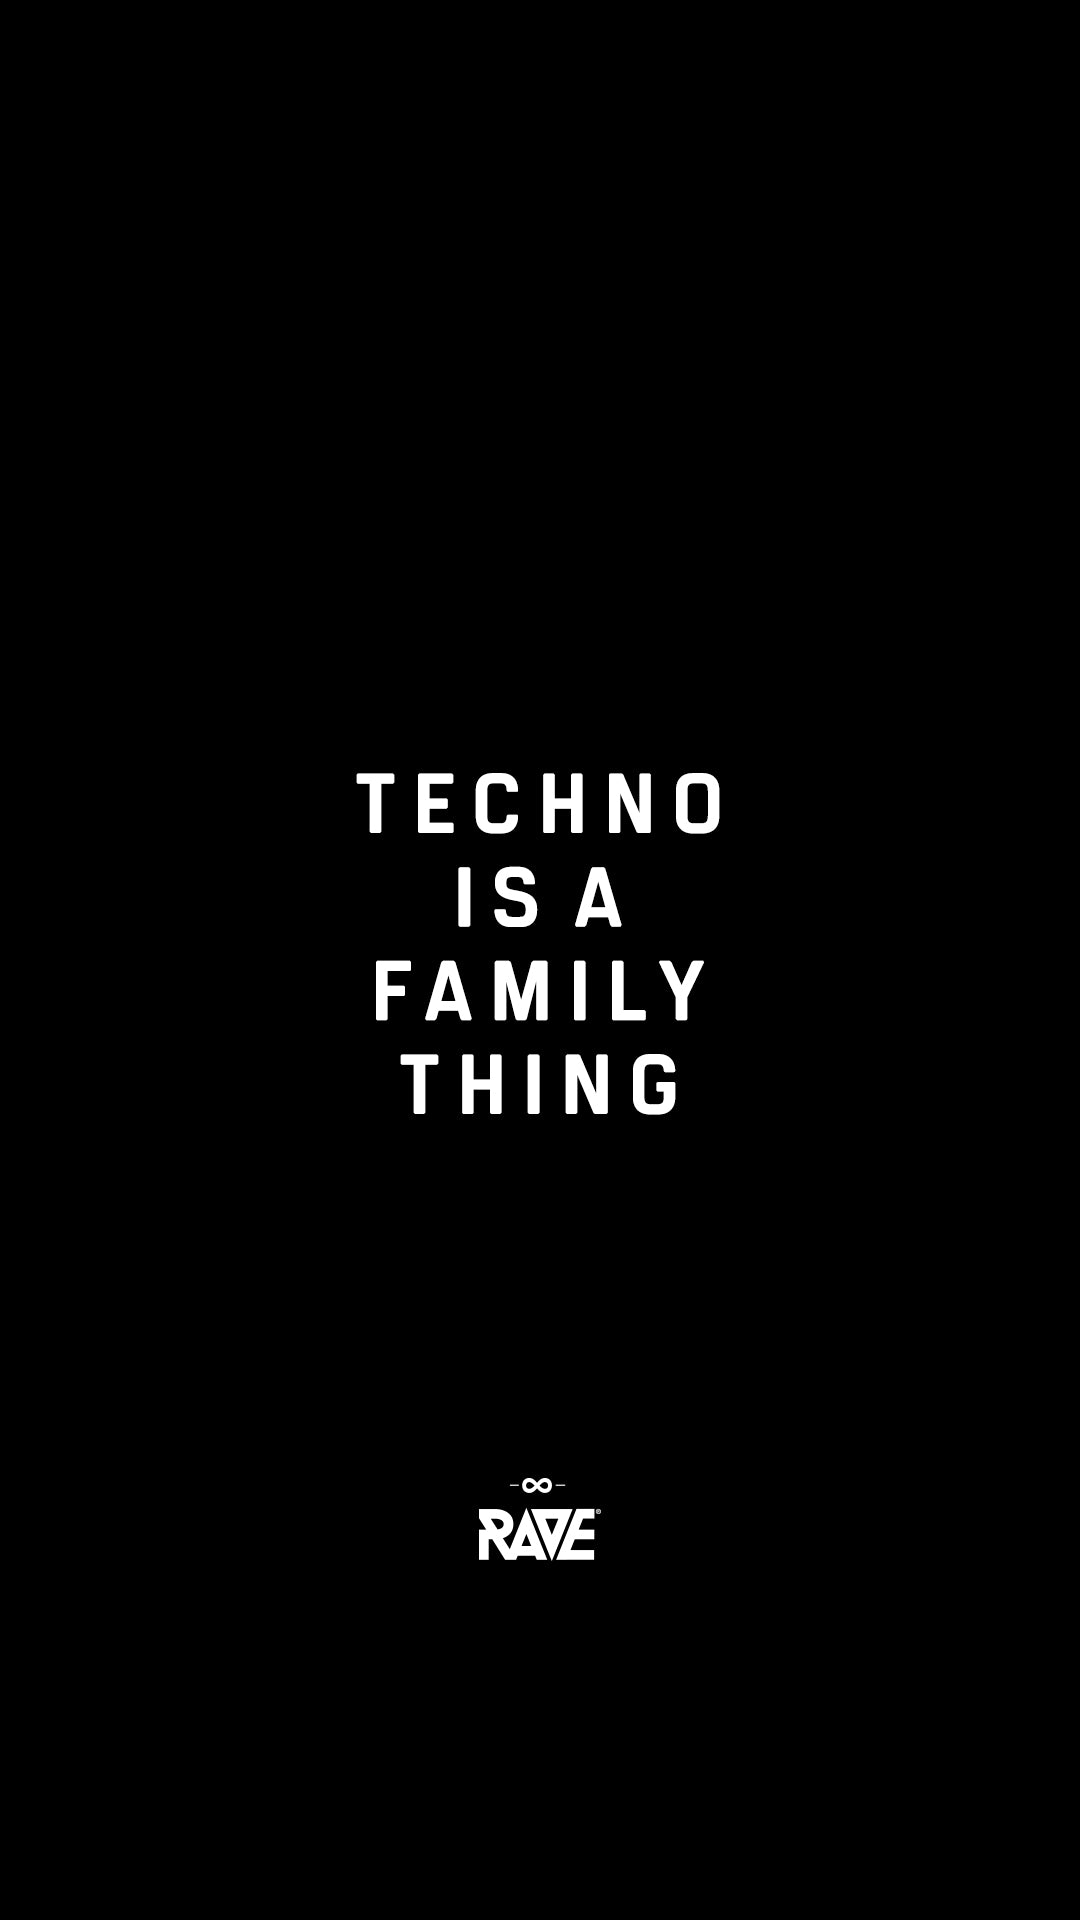 Techno is a family thing wallpaper